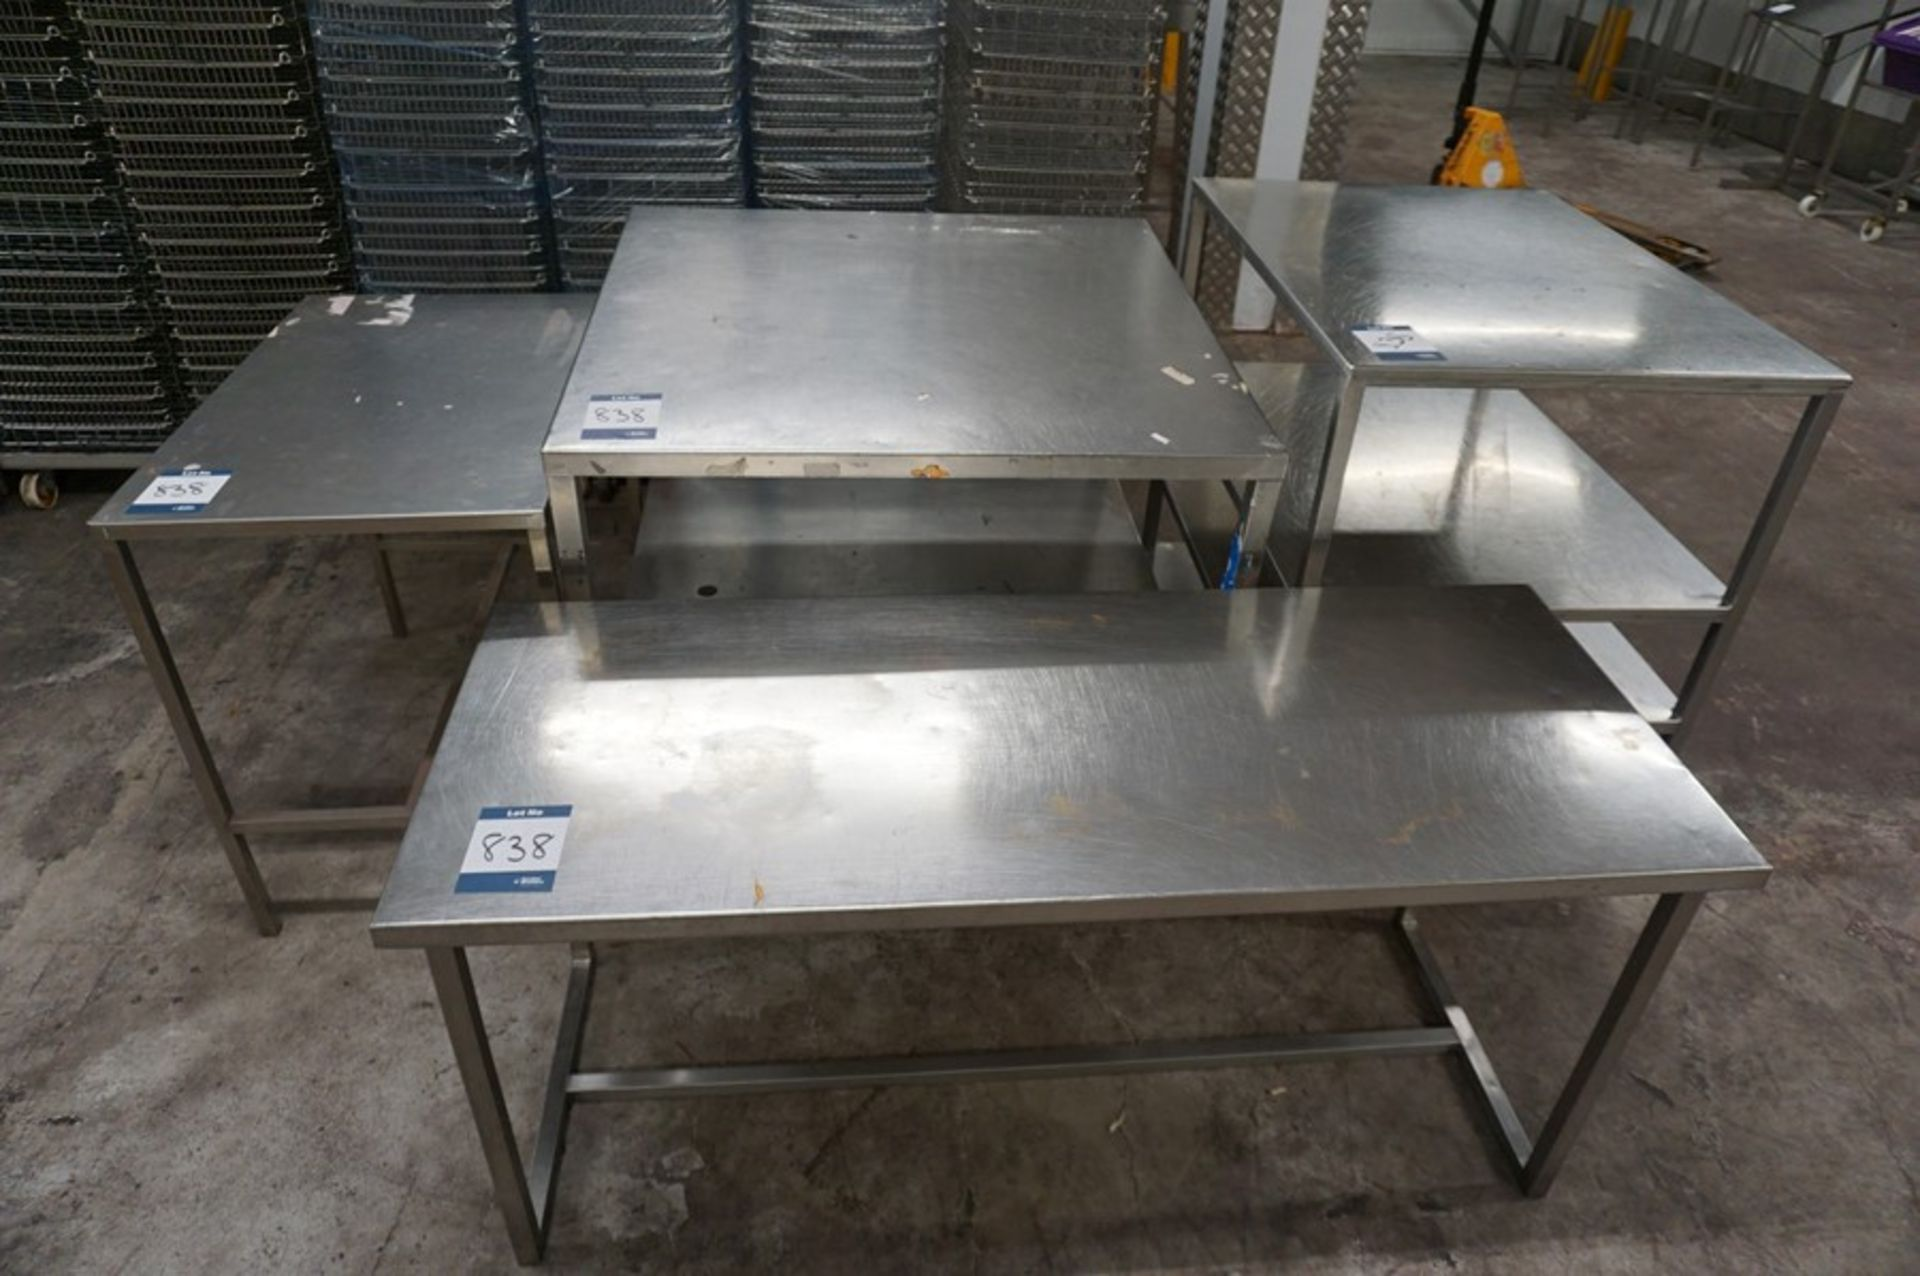 Lot 838 - 4 x Various stainless steel prep tables, as lotted